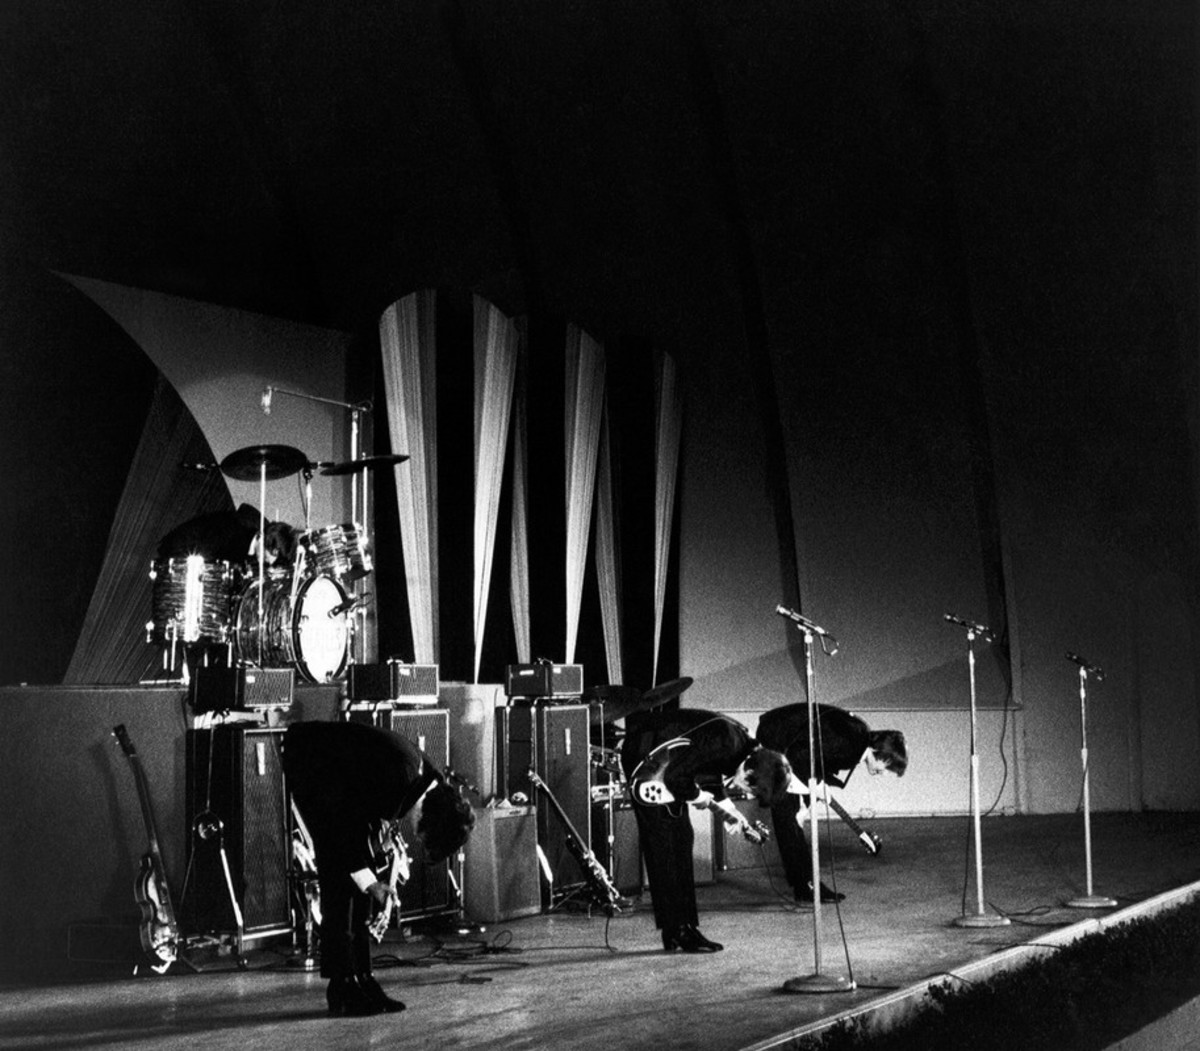 The Beatles perform at Hollywood Bowl in Los Angeles, California on 23 August 1964. ©Getty Images